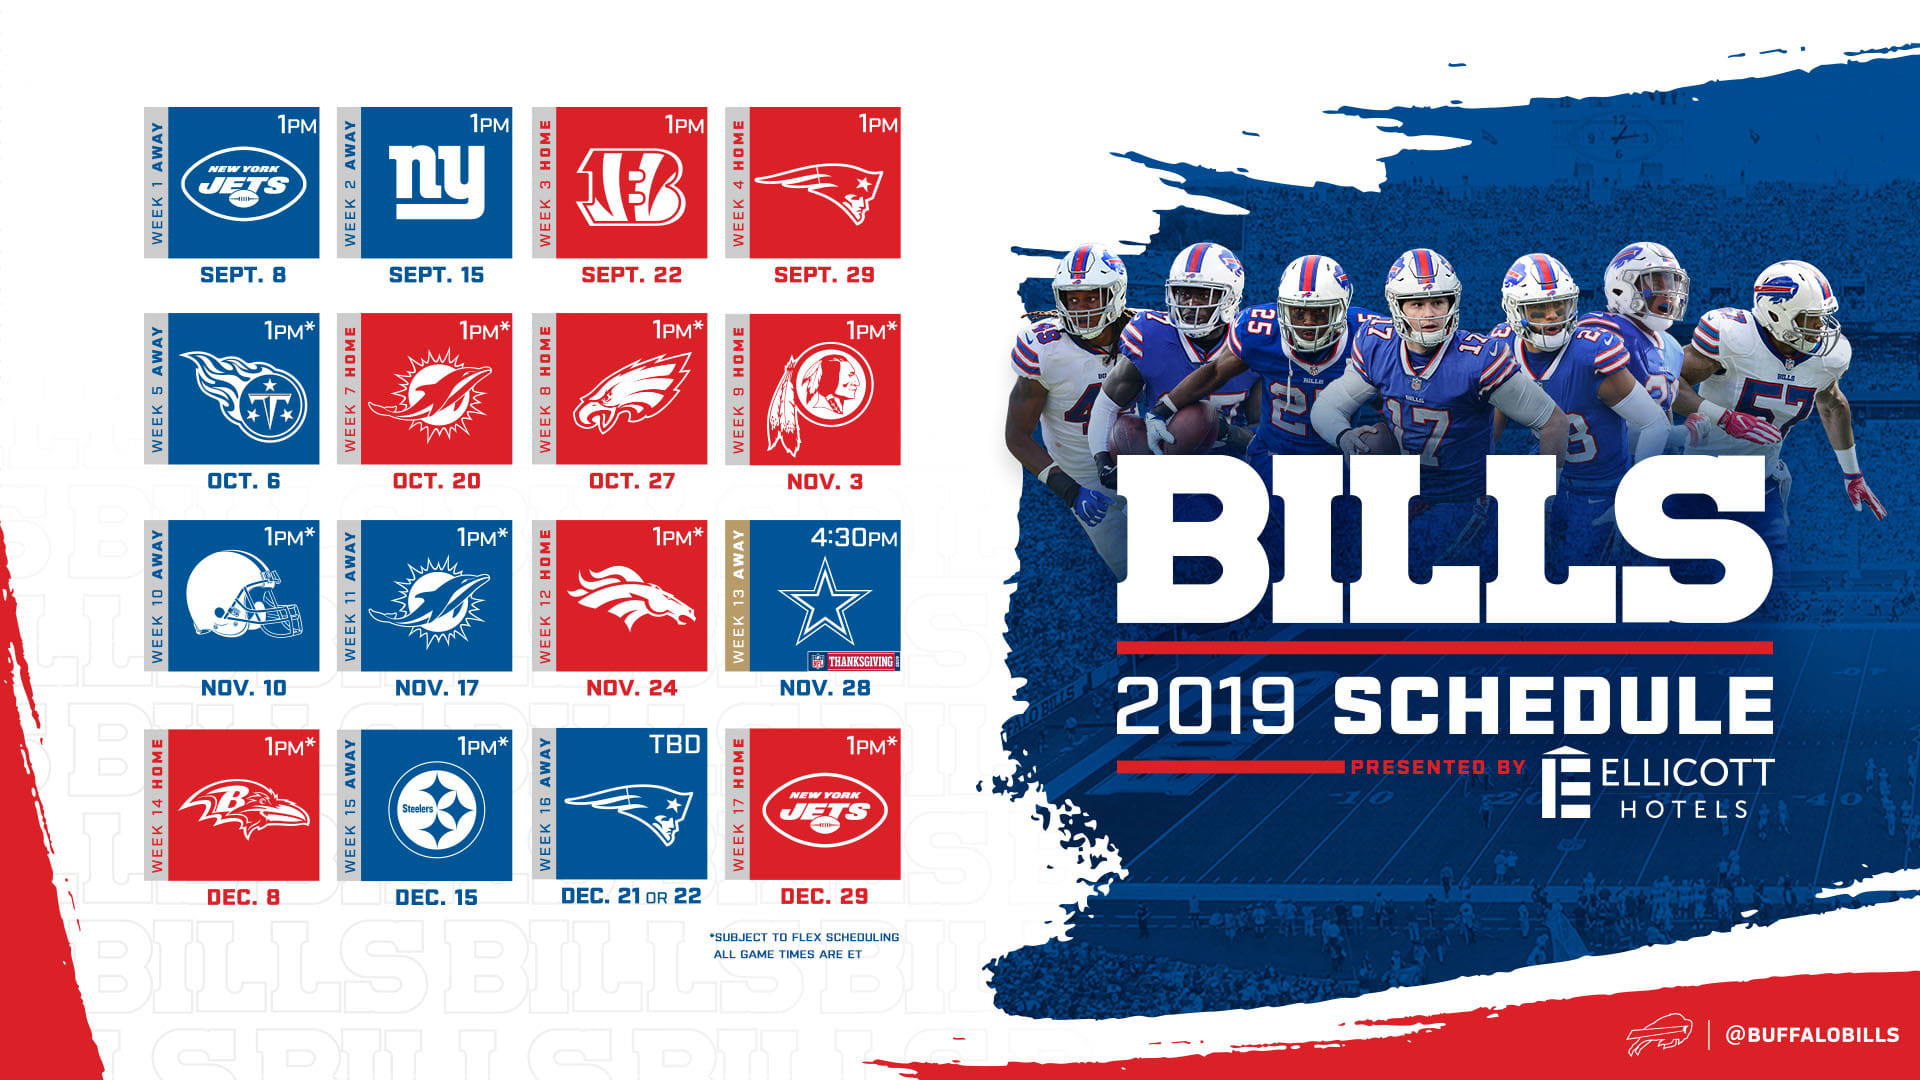 Buffalo Bills Wallpapers Buffalo Bills   buffalobillscom 1920x1080